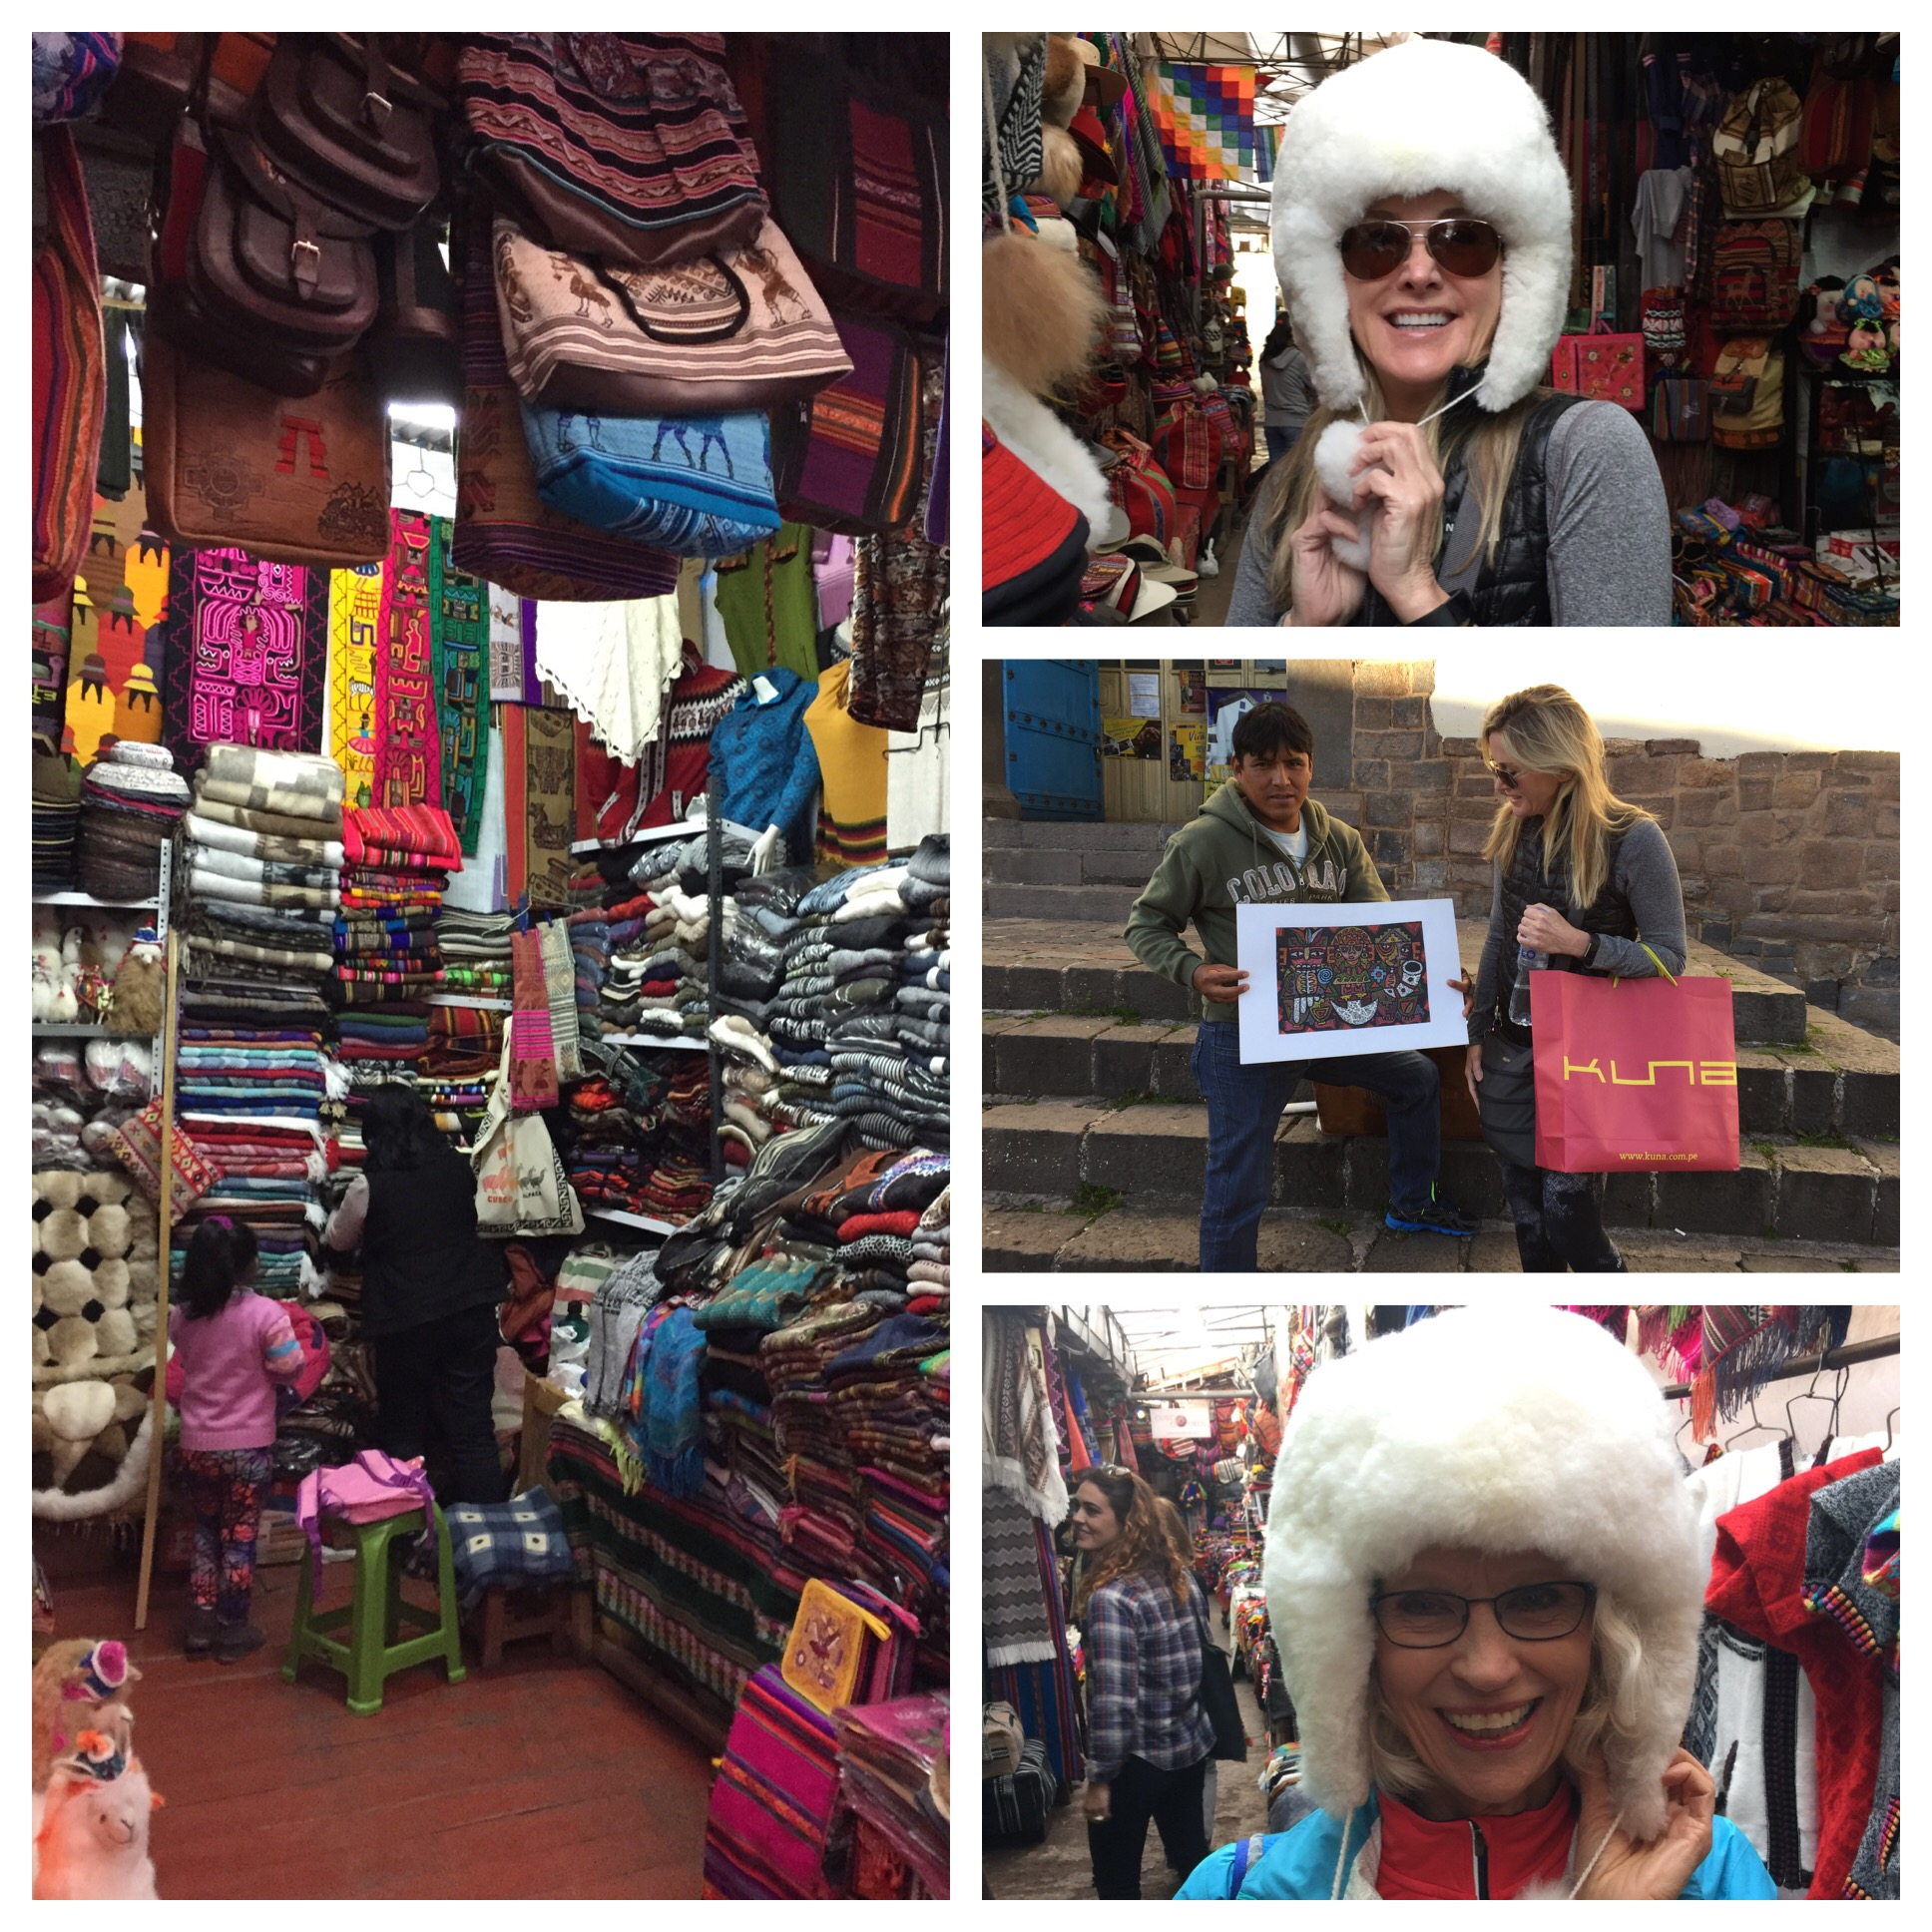 Alpaca hats to keep us warm!! And lots of artists on the street selling their paintings. There is a famous art school in Cusco that many of the artists attend.